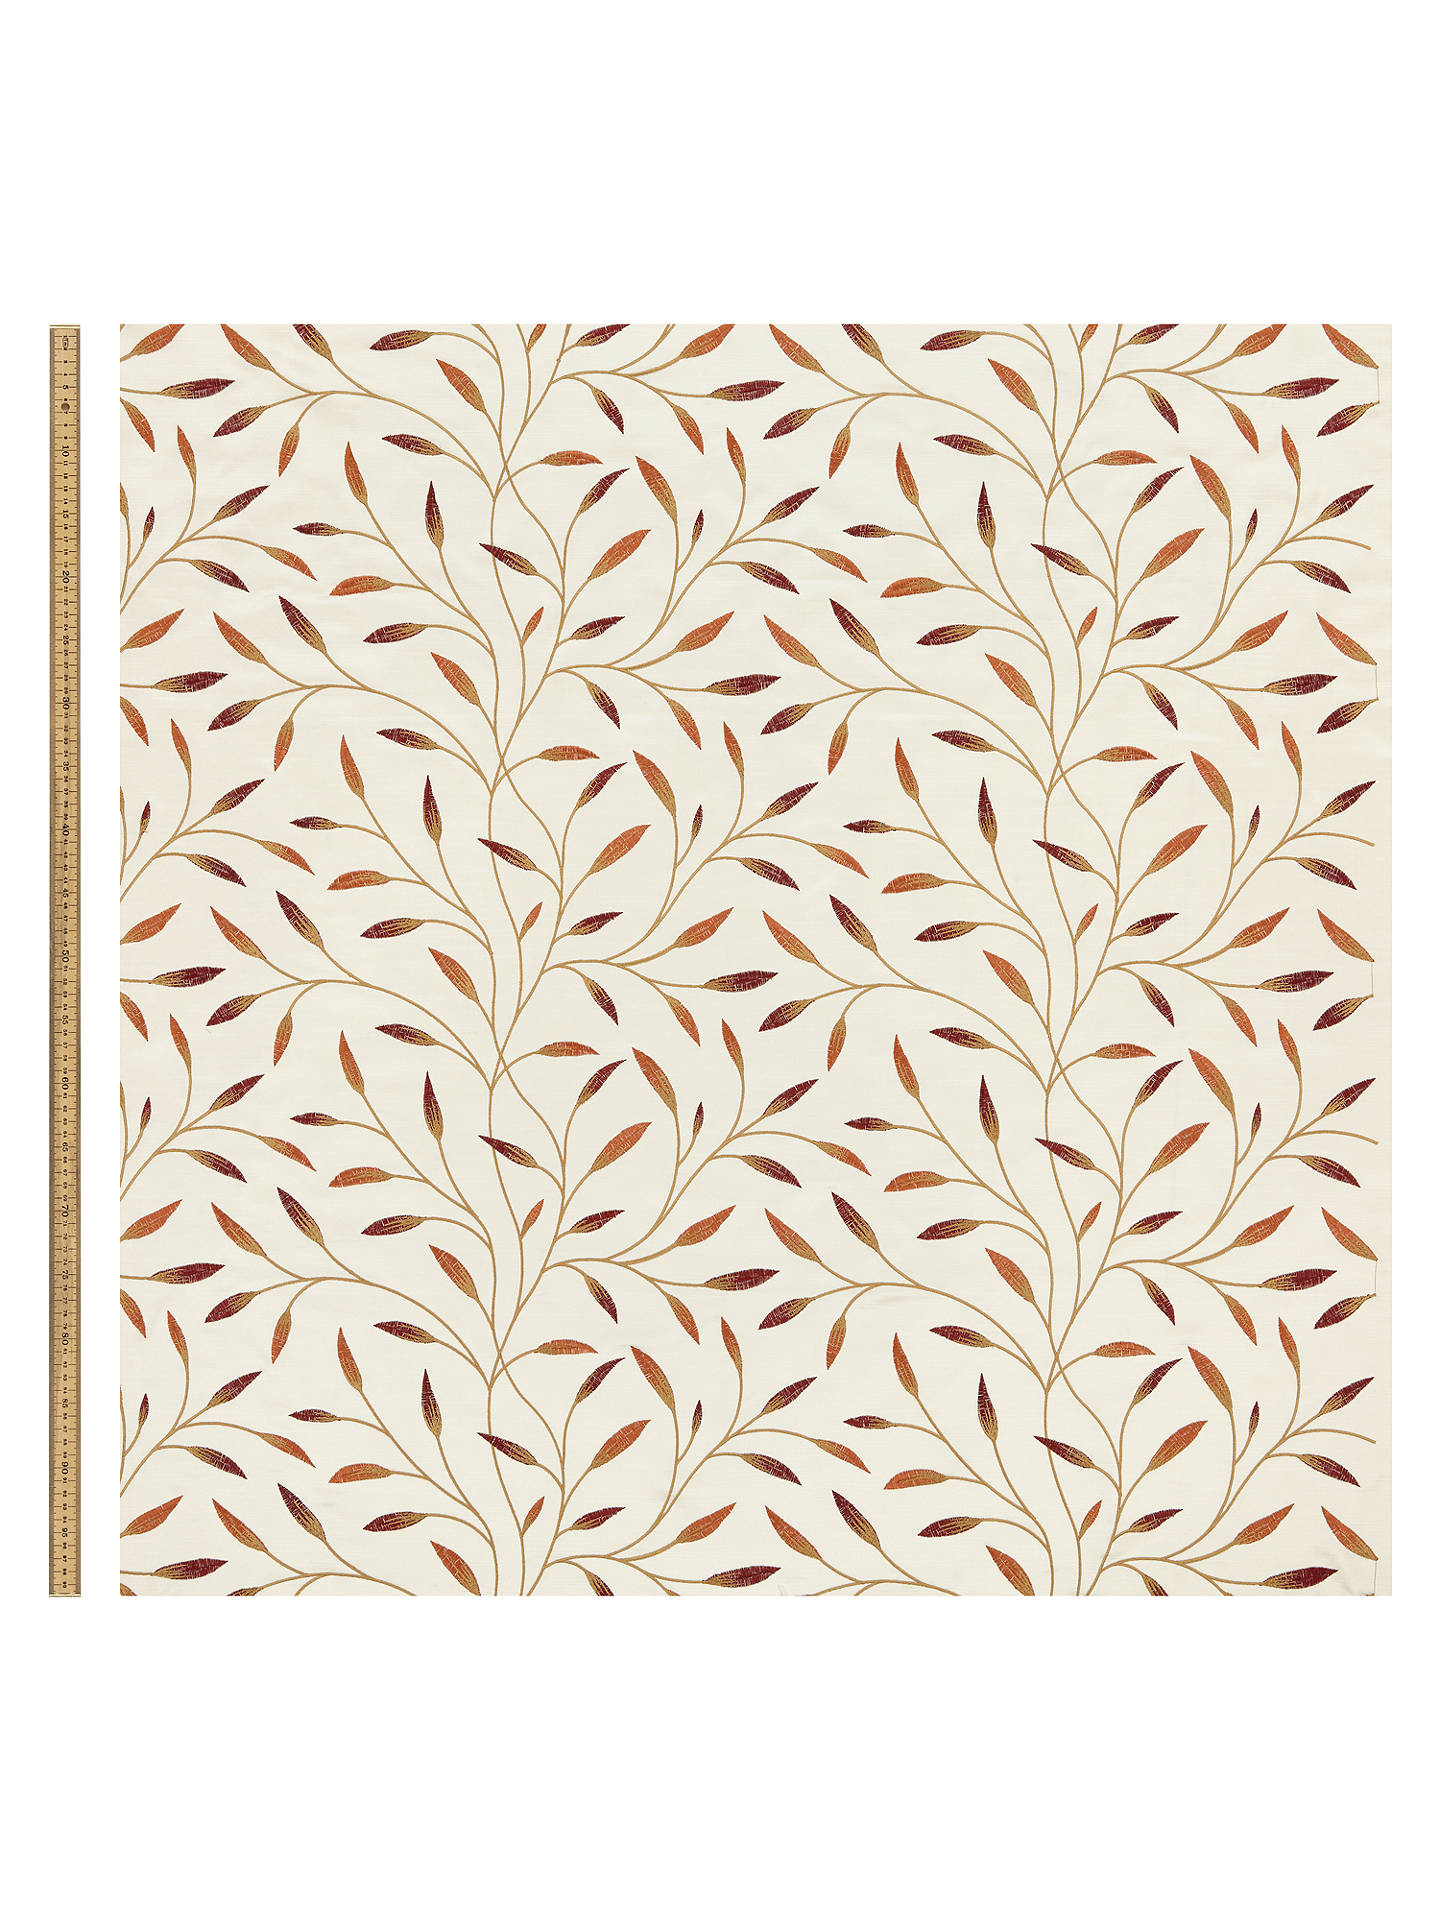 Buy John Lewis & Partners Christine Furnishing Fabric, Red Nut Online at johnlewis.com